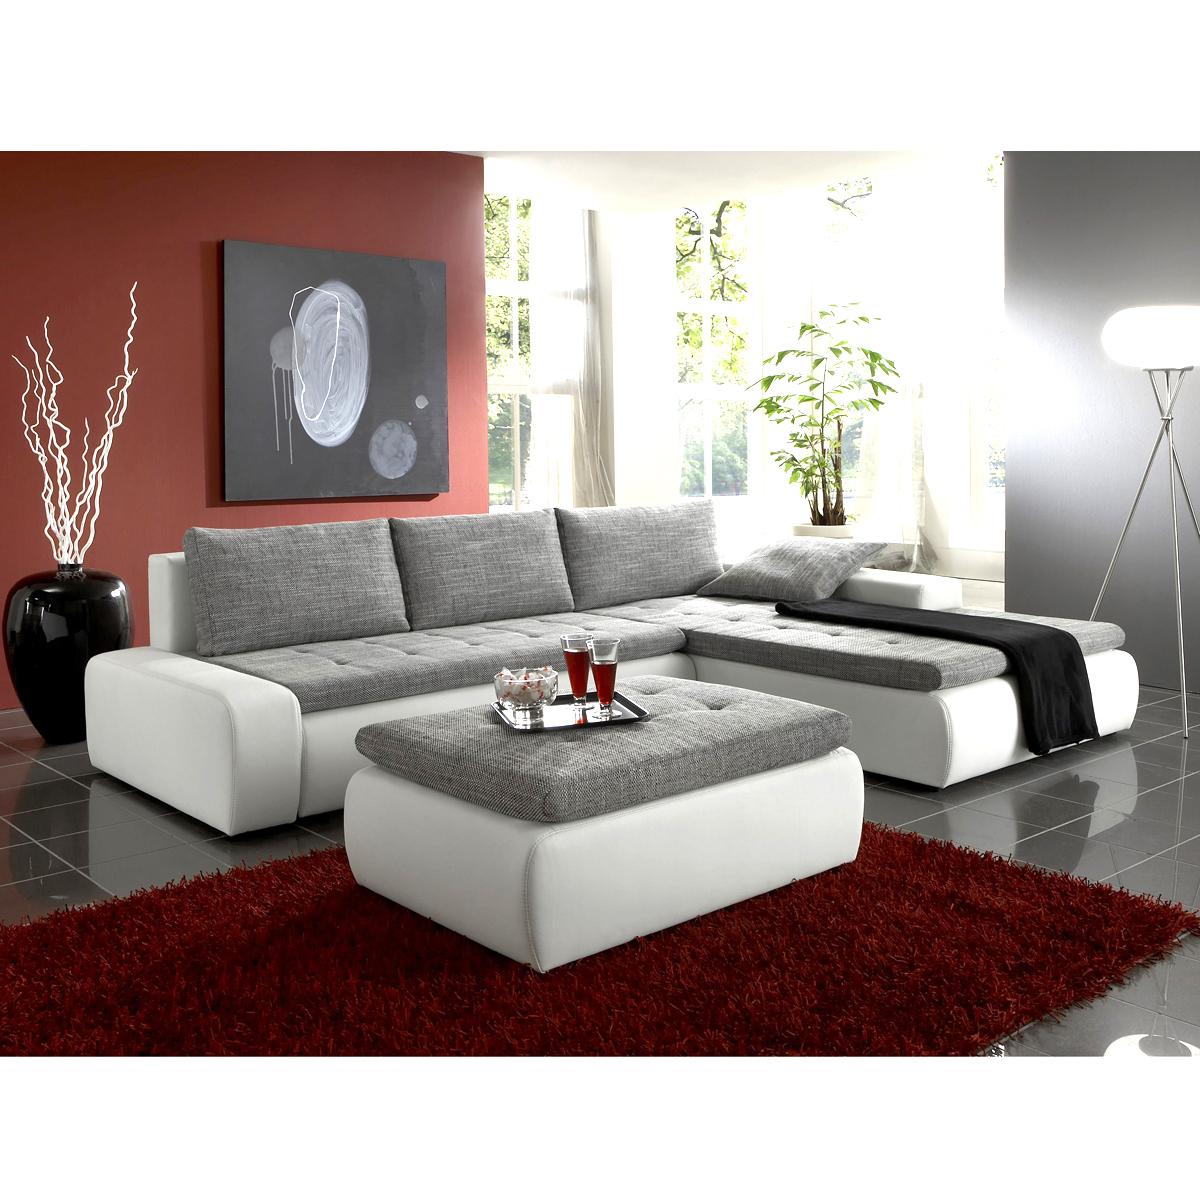 ecksofa alfa wohnlandschaft mit hocker in wei und grau mit g stebett ebay. Black Bedroom Furniture Sets. Home Design Ideas